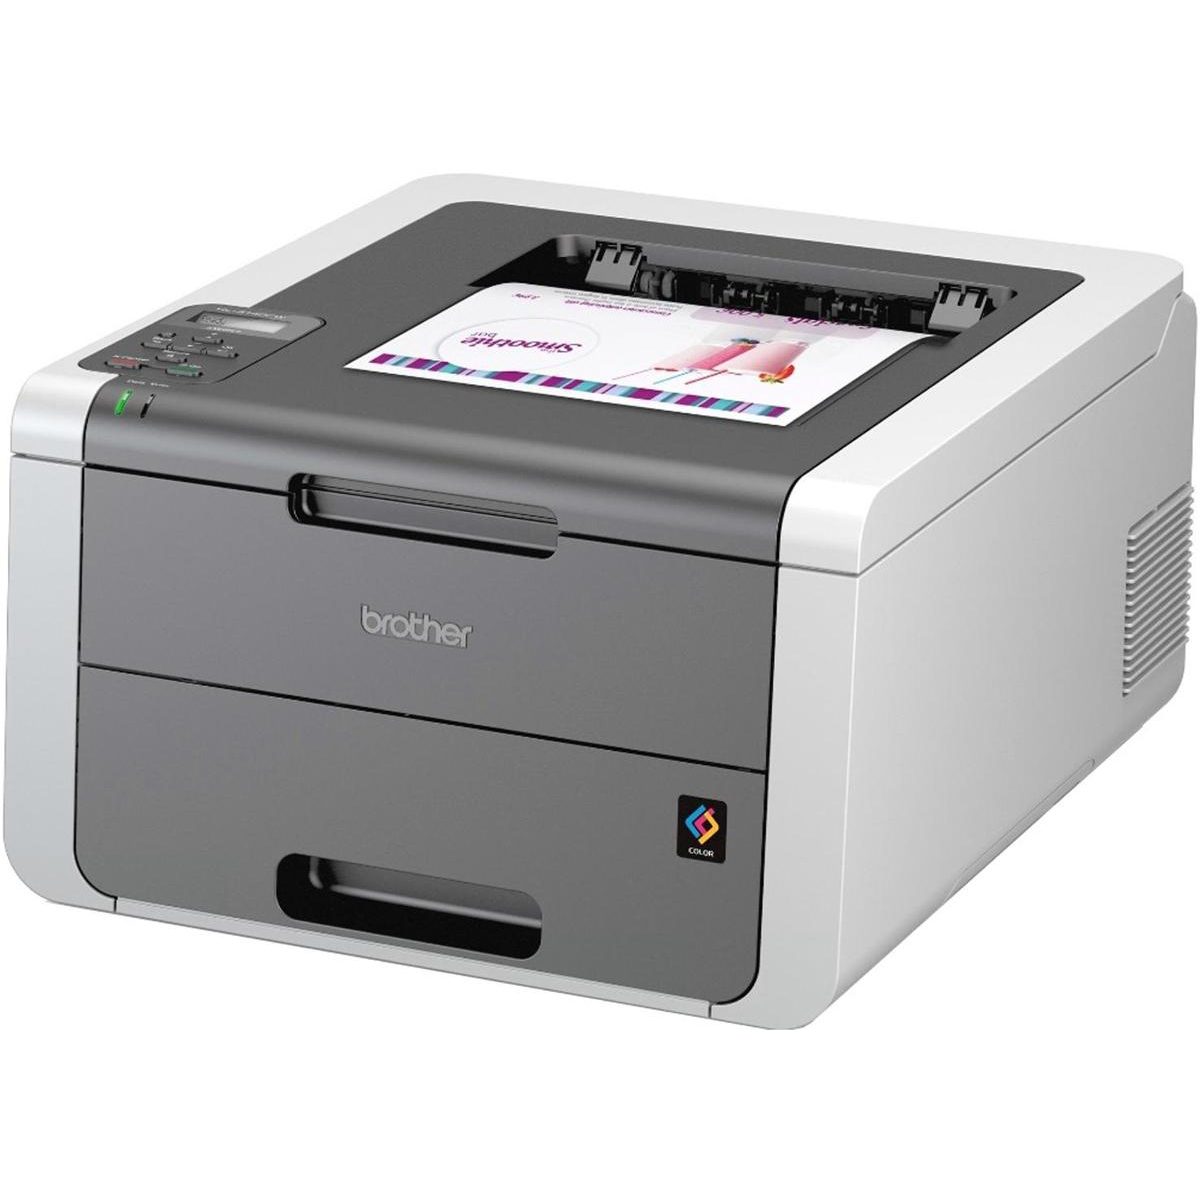 Brother Colour Laser A4 Printer With Wireless Network Ref HL3140CW